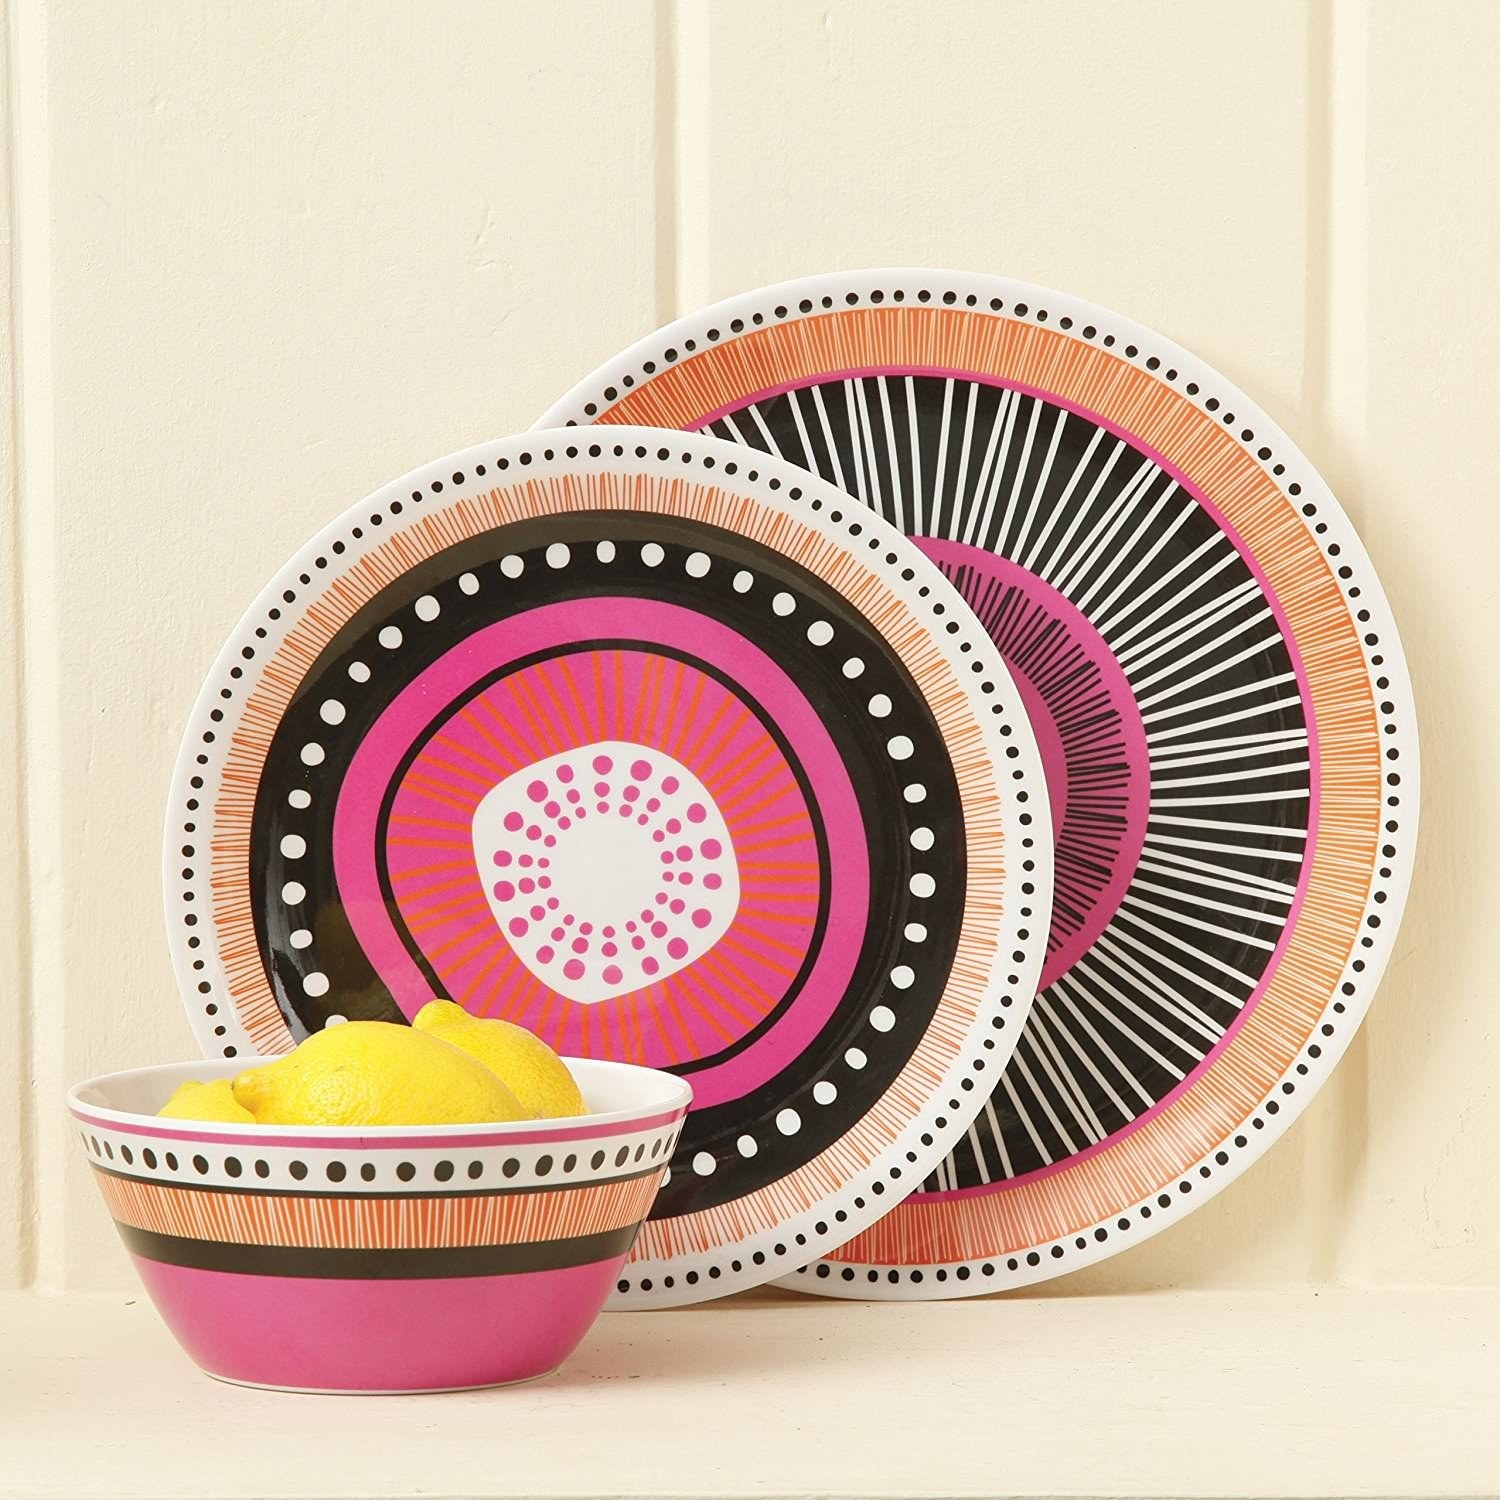 A 12-piece dinnerware set with a funky design to add some charm to your kitchen. It comes with four dinner plates ...  sc 1 st  BuzzFeed & 26 Unexpectedly Attractive Kitchen Products You Can Get From Walmart